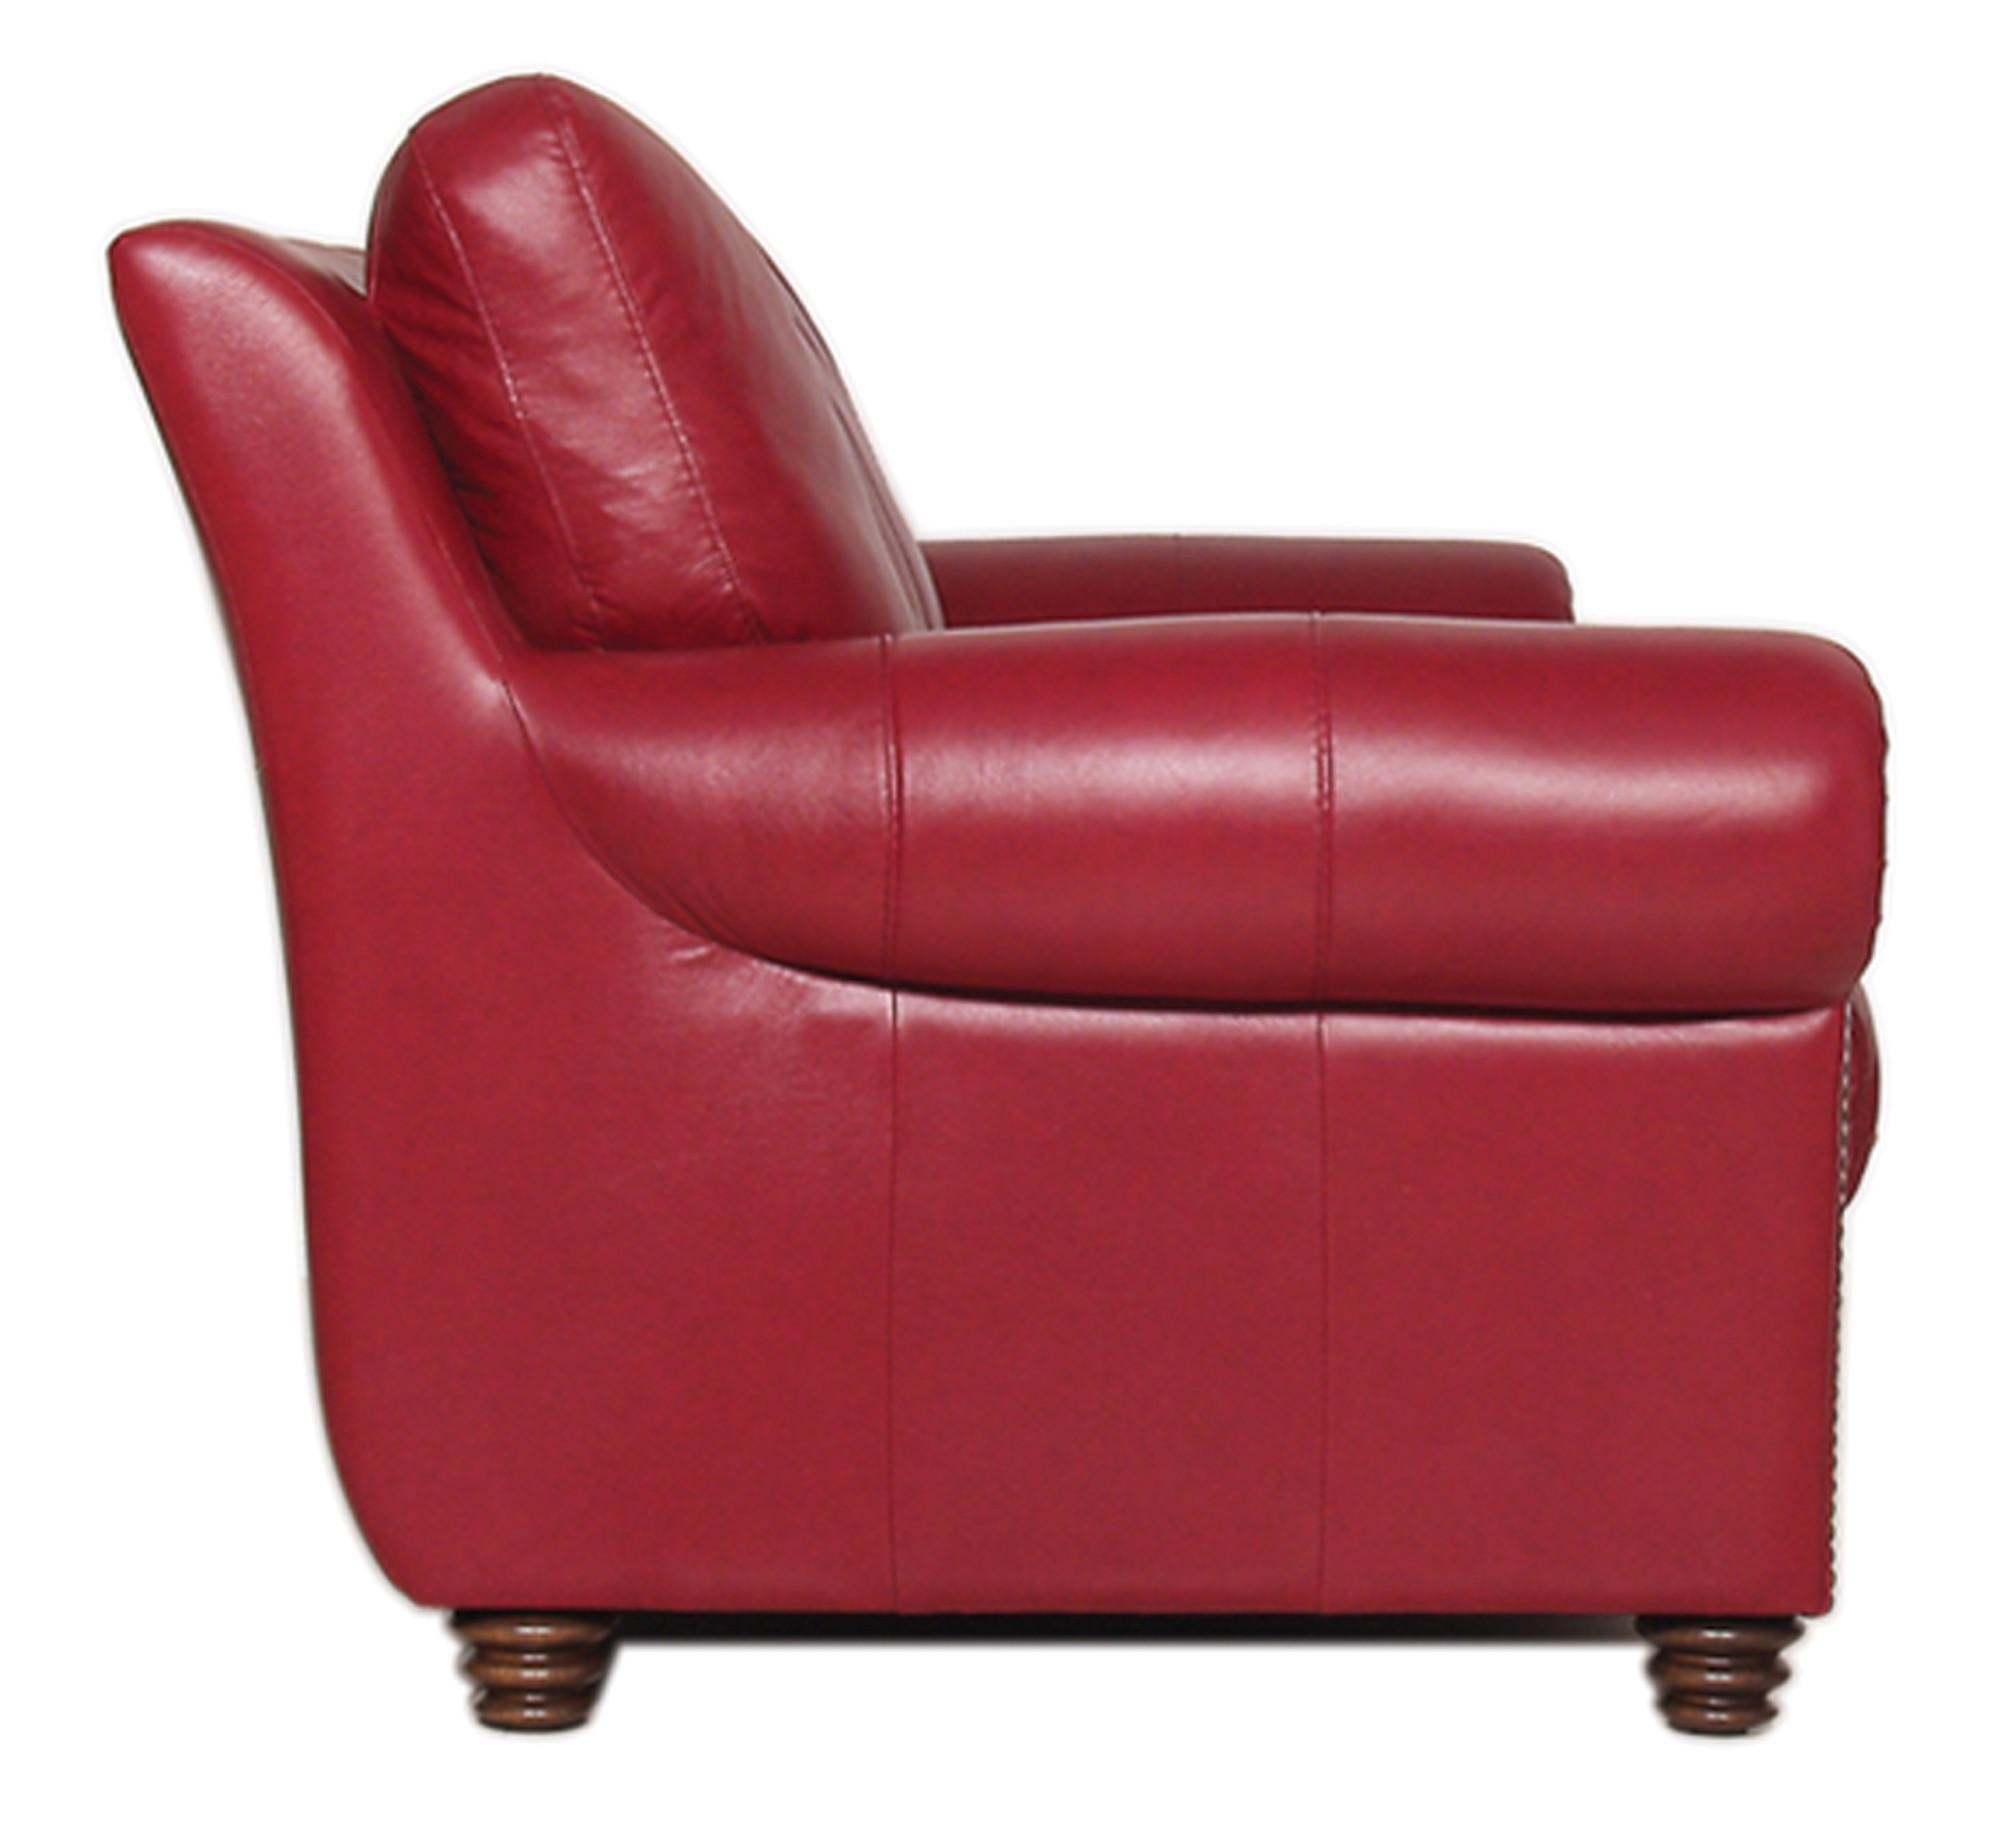 20 best ideas cheap sofa chairs sofa ideas for Cheap leather chairs